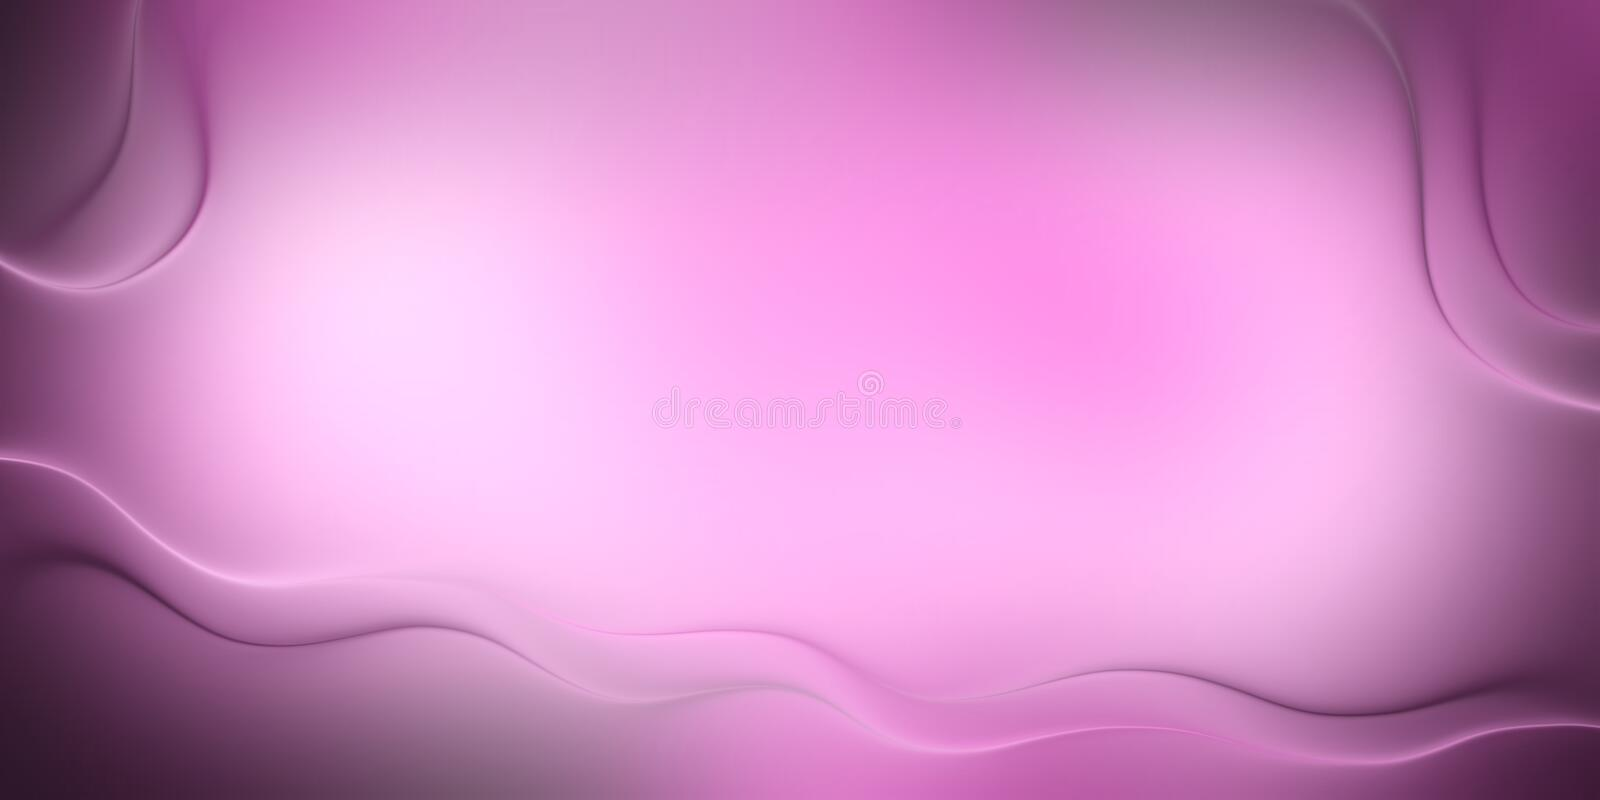 Pink smooth wave background for calligraphy royalty free stock photography